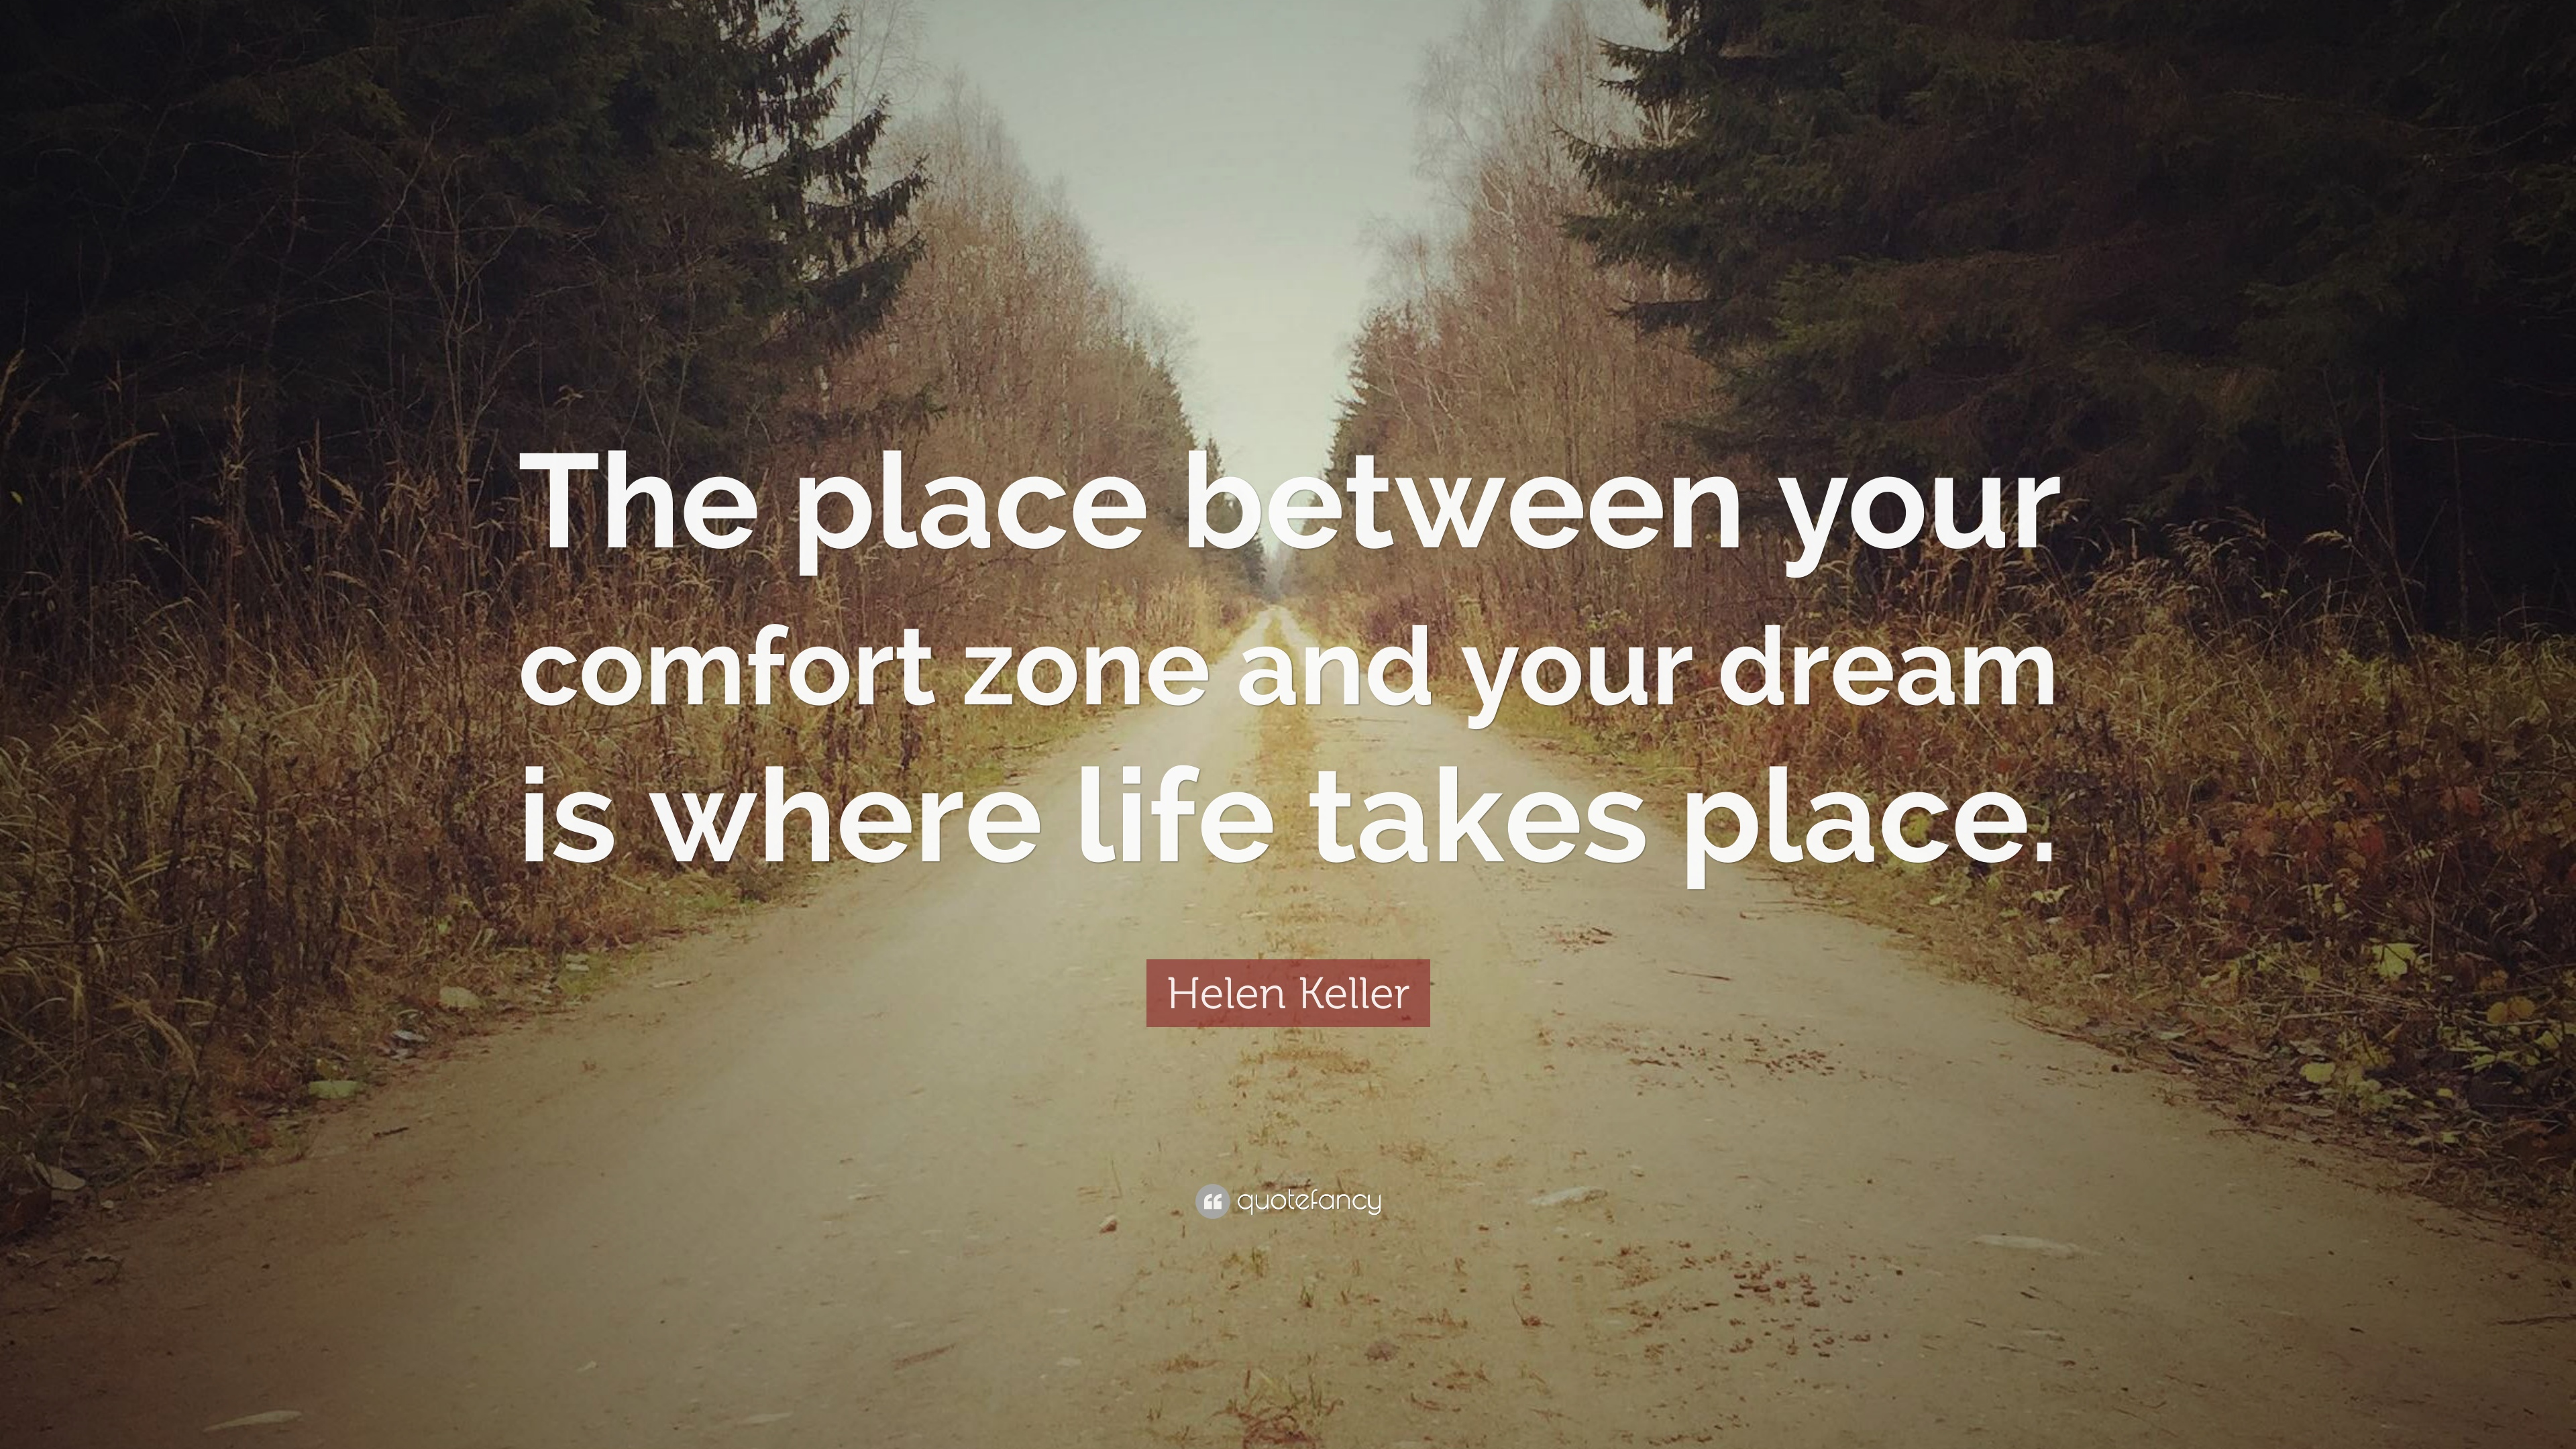 Helen keller quote the place between your comfort zone and your helen keller quote the place between your comfort zone and your dream is where altavistaventures Images